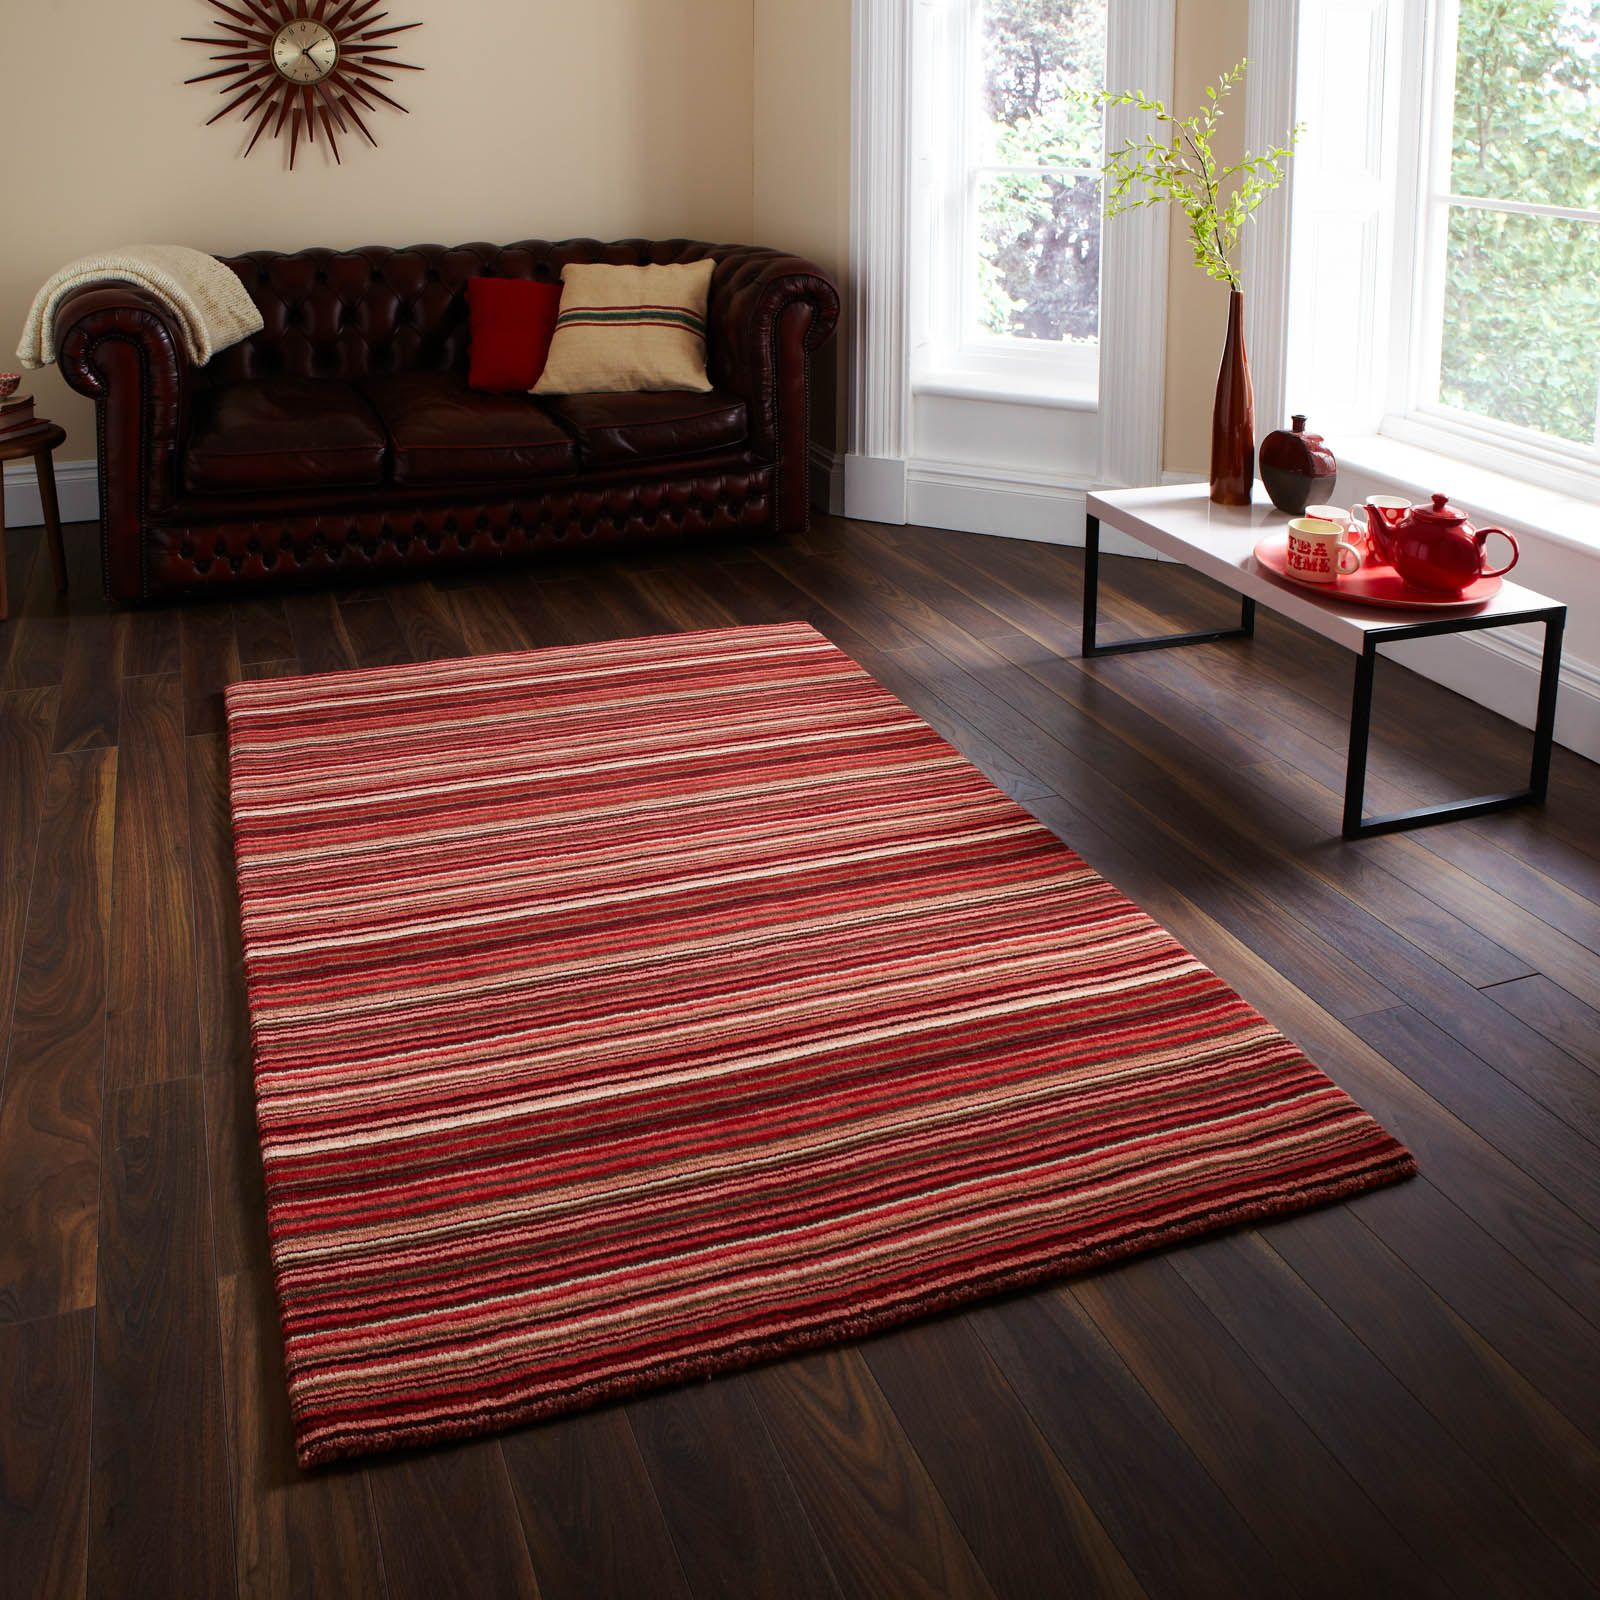 low pile area rug and red rugs